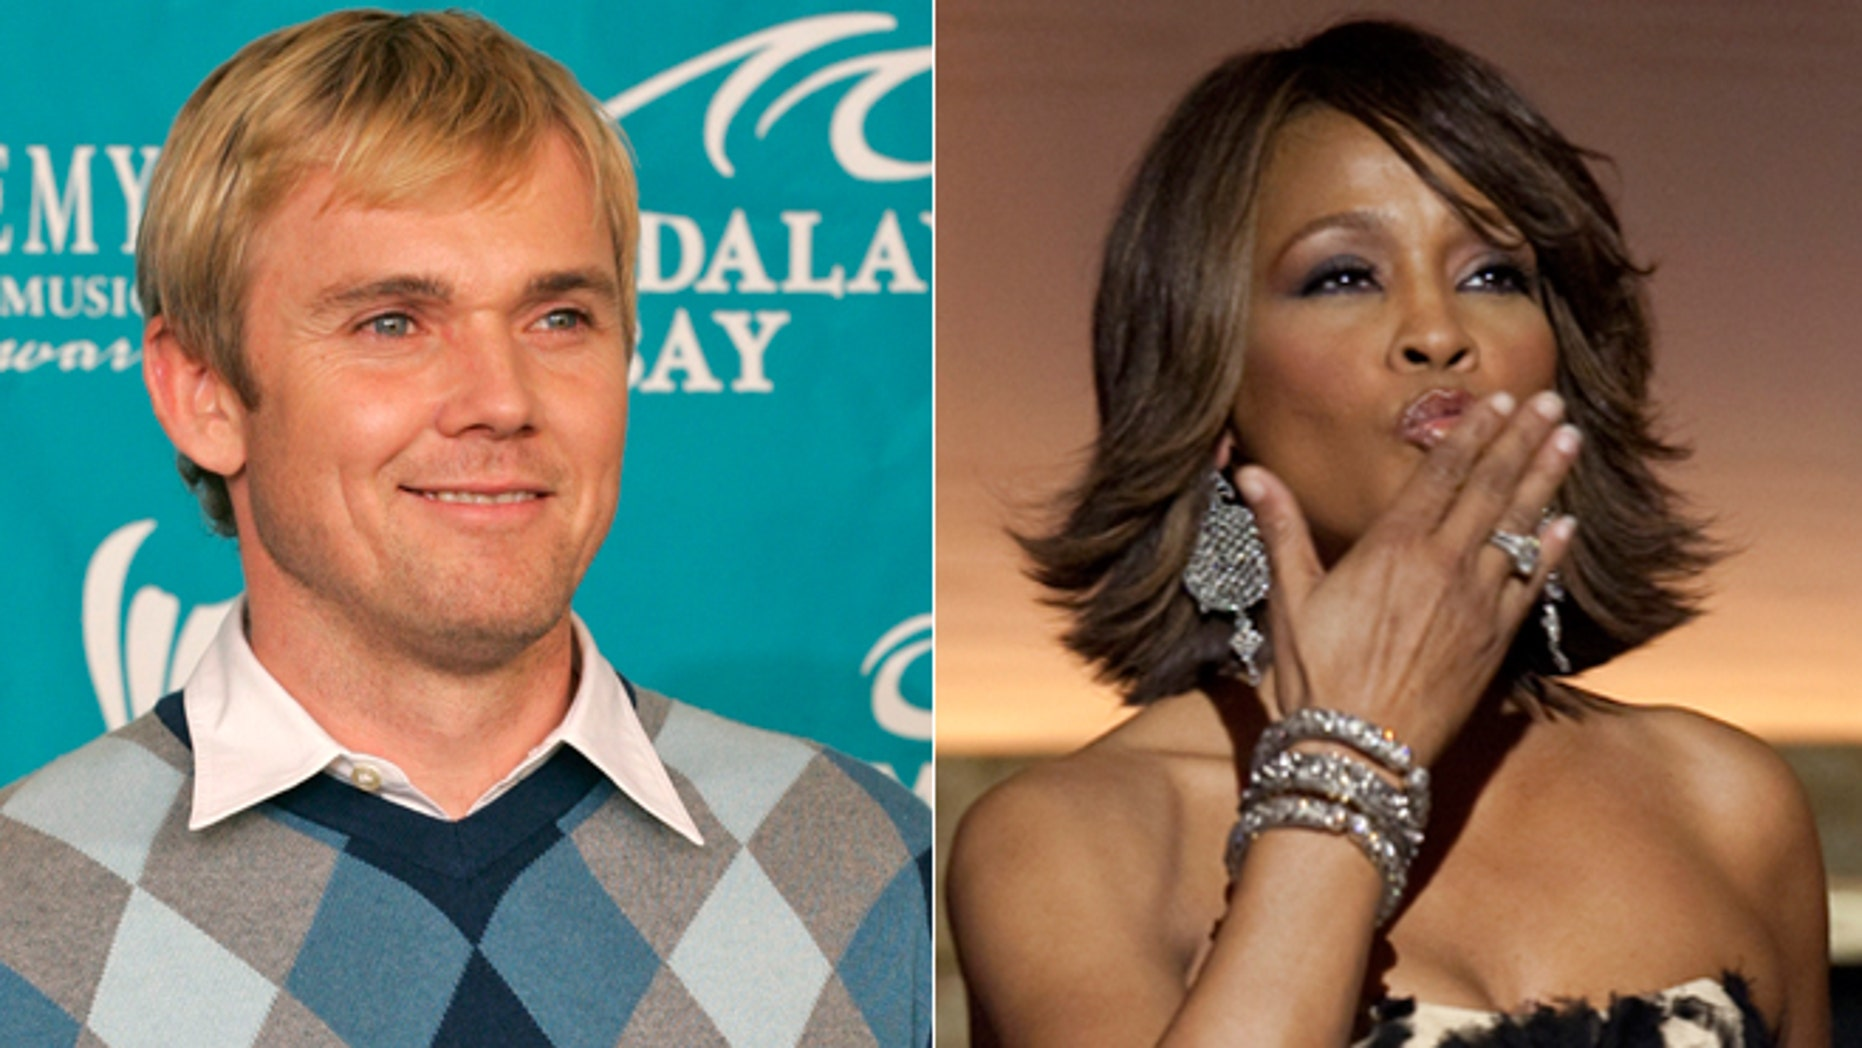 Ricky Schroder, left, and Whitney Houston, right, are shown.